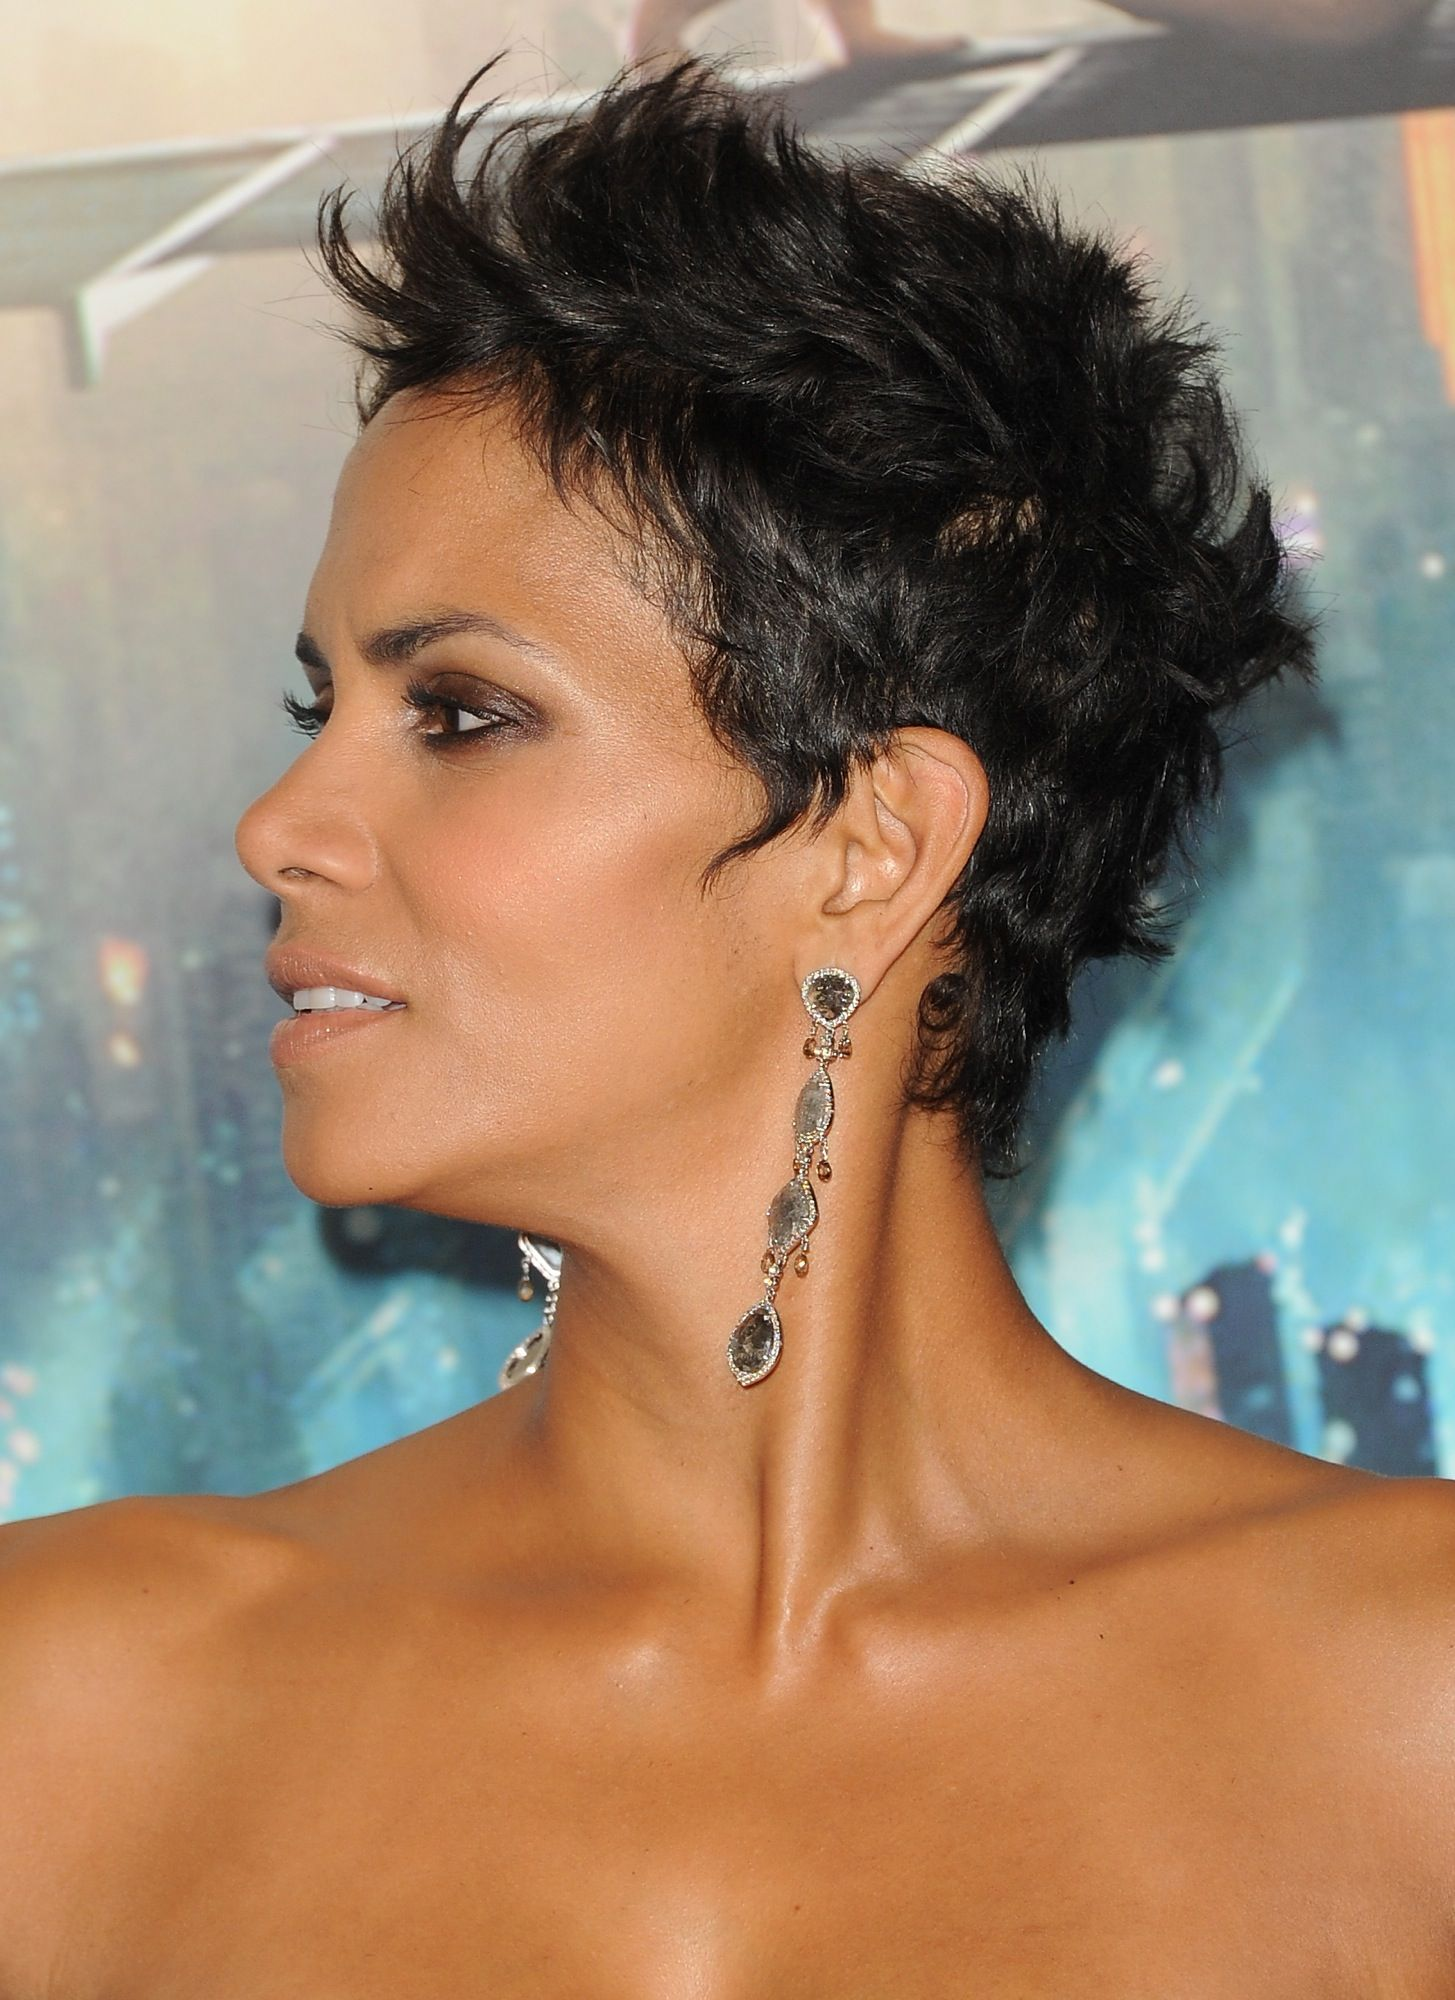 Coiffure Courte Halle Berry Halle Berry That Cut Is Sick With It My Style Cheveux